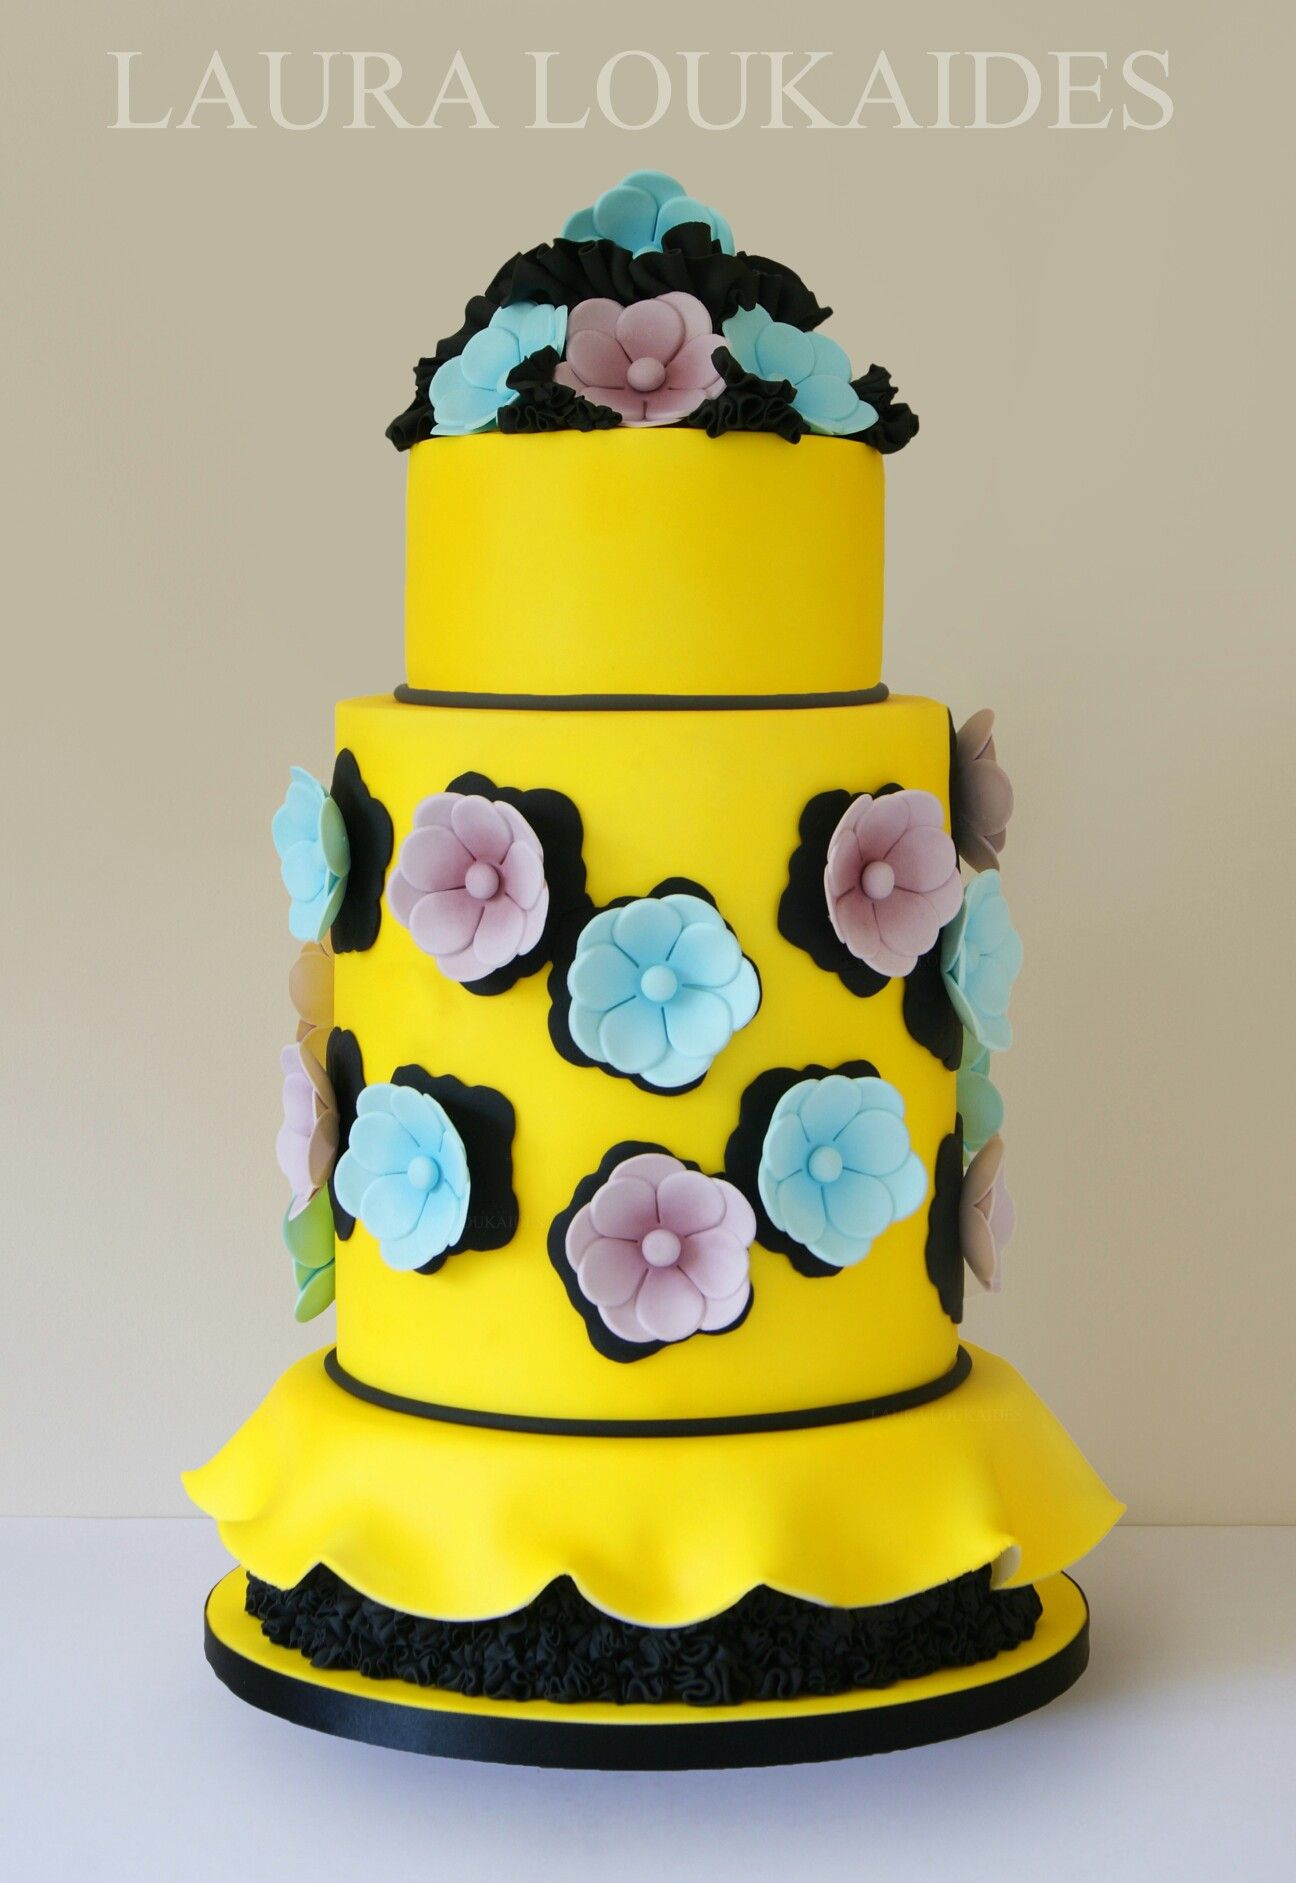 Viktor & Rolf Inspired Cake By Laura Loukaides   Featured in Wedding Cakes & Sugar Flowers Magazine, Issue 28